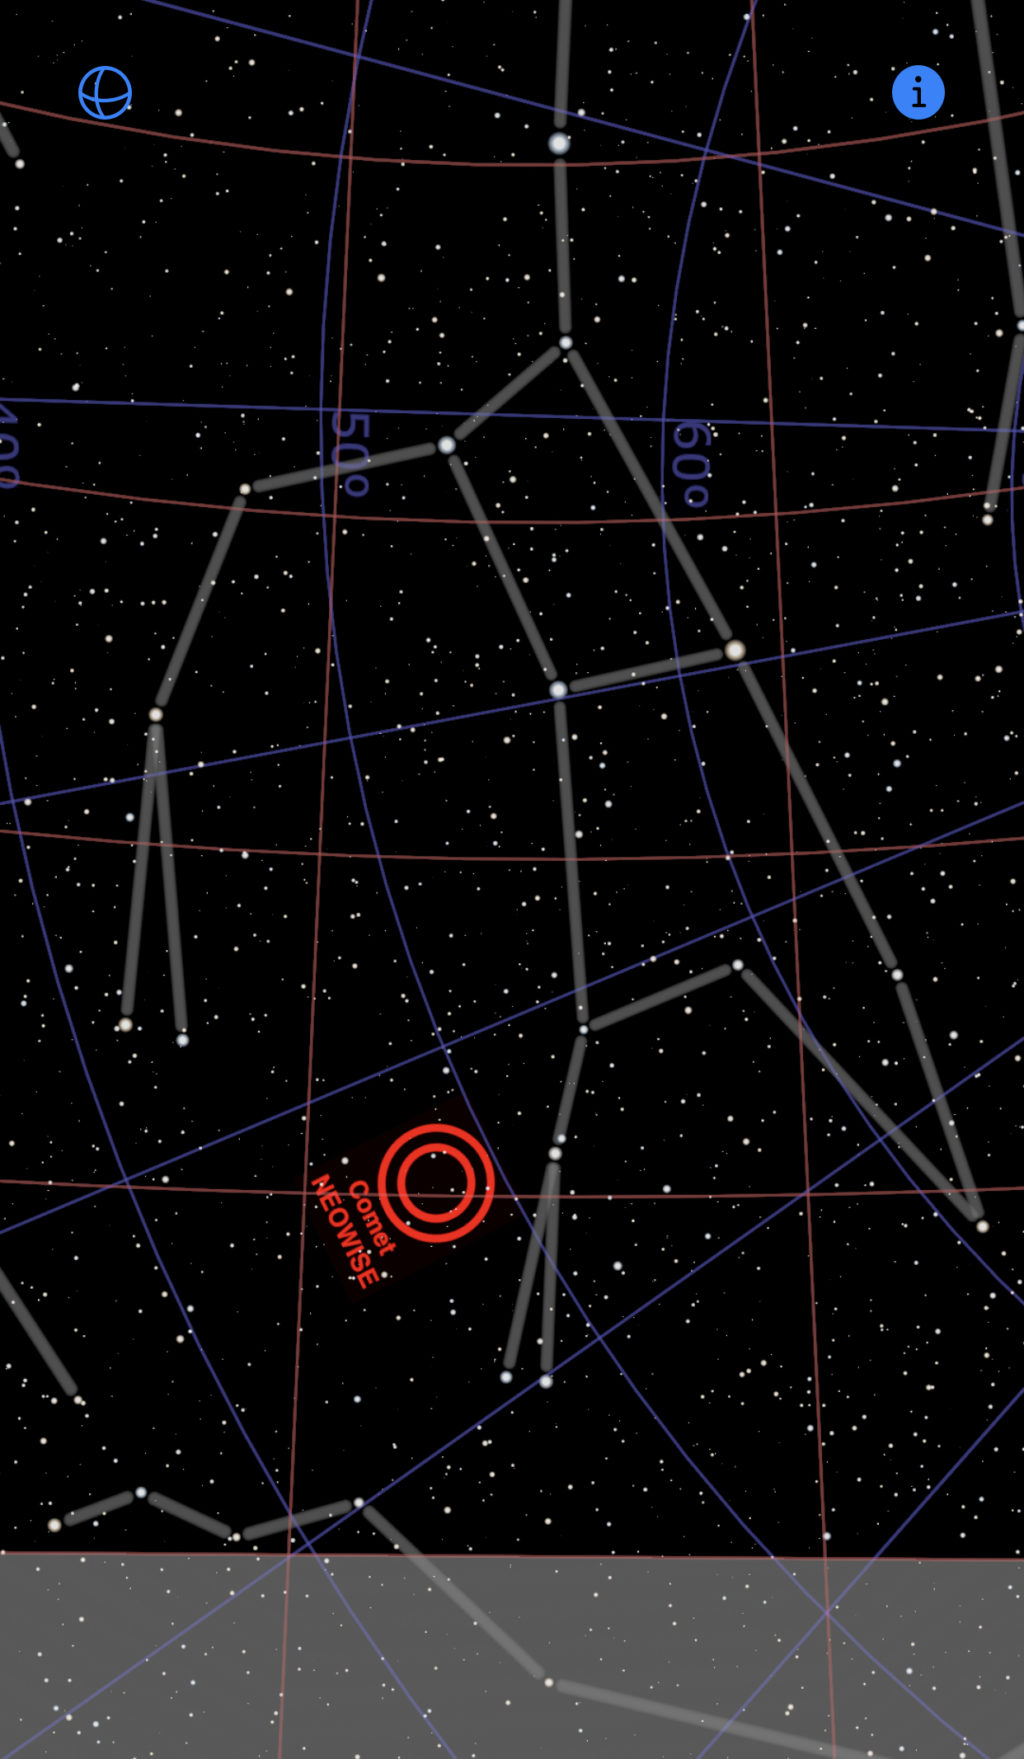 Screenshot of CometNEOWISE app showing comet NEOWISE